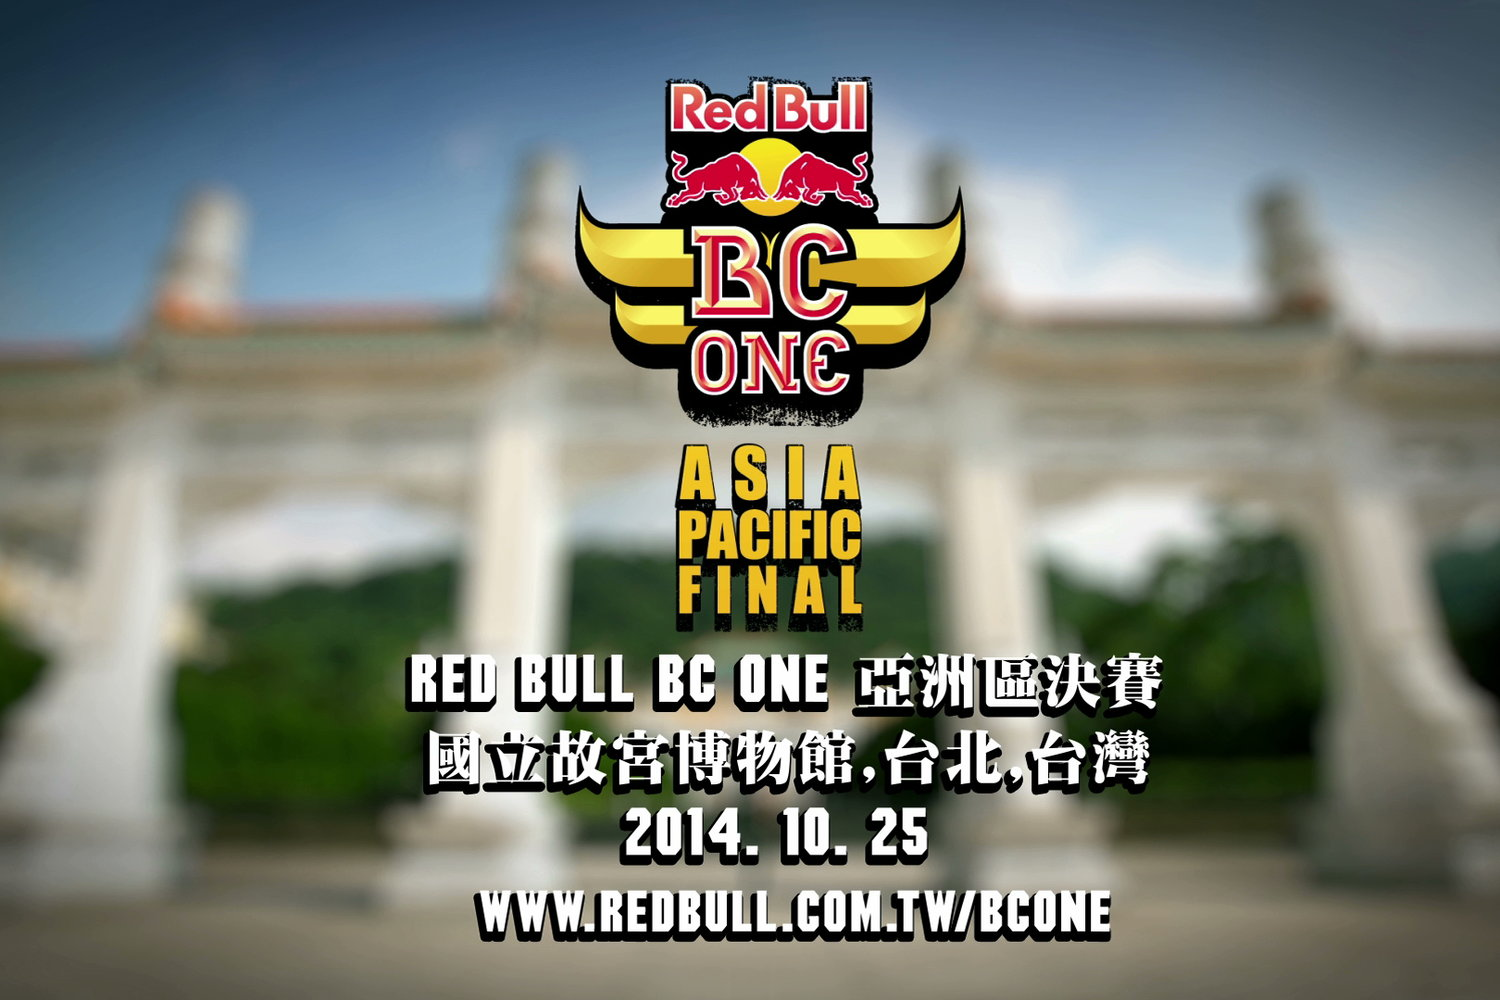 red-bull-bc-one-2014-asia-pacific-final-teaser